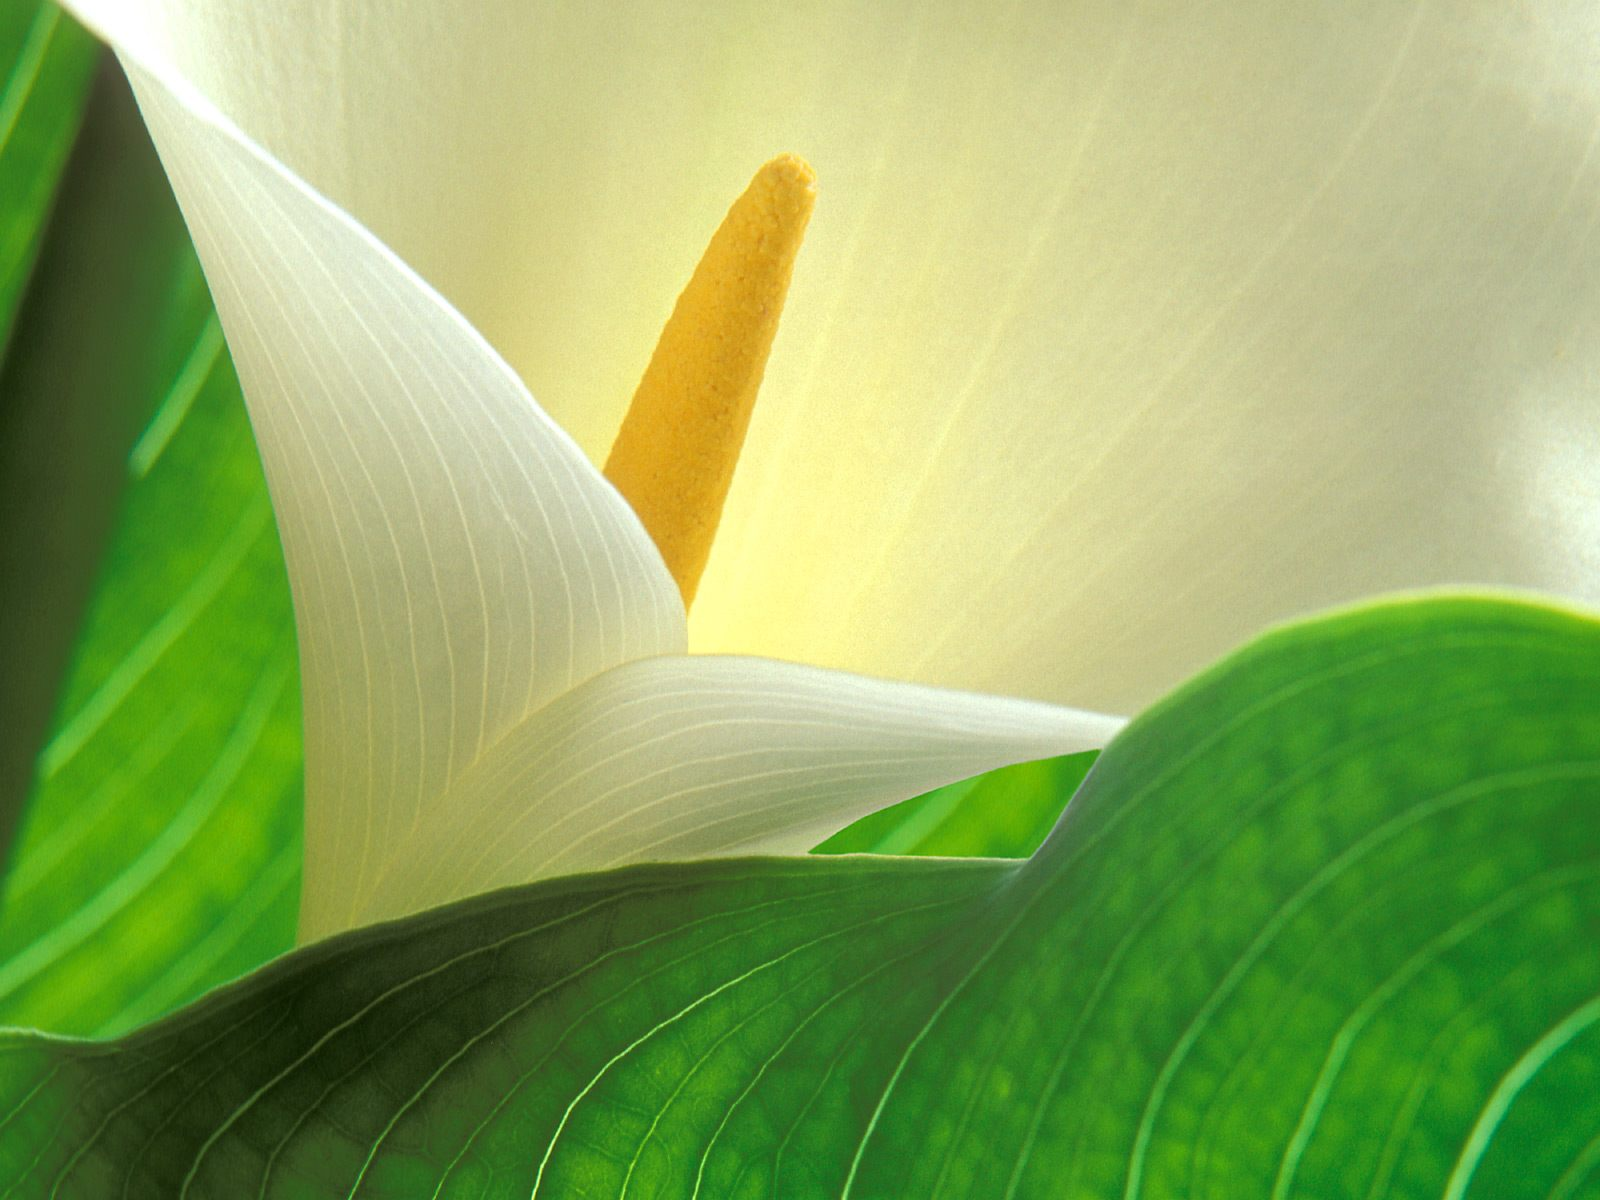 Study of Light and Form, Calla Lily